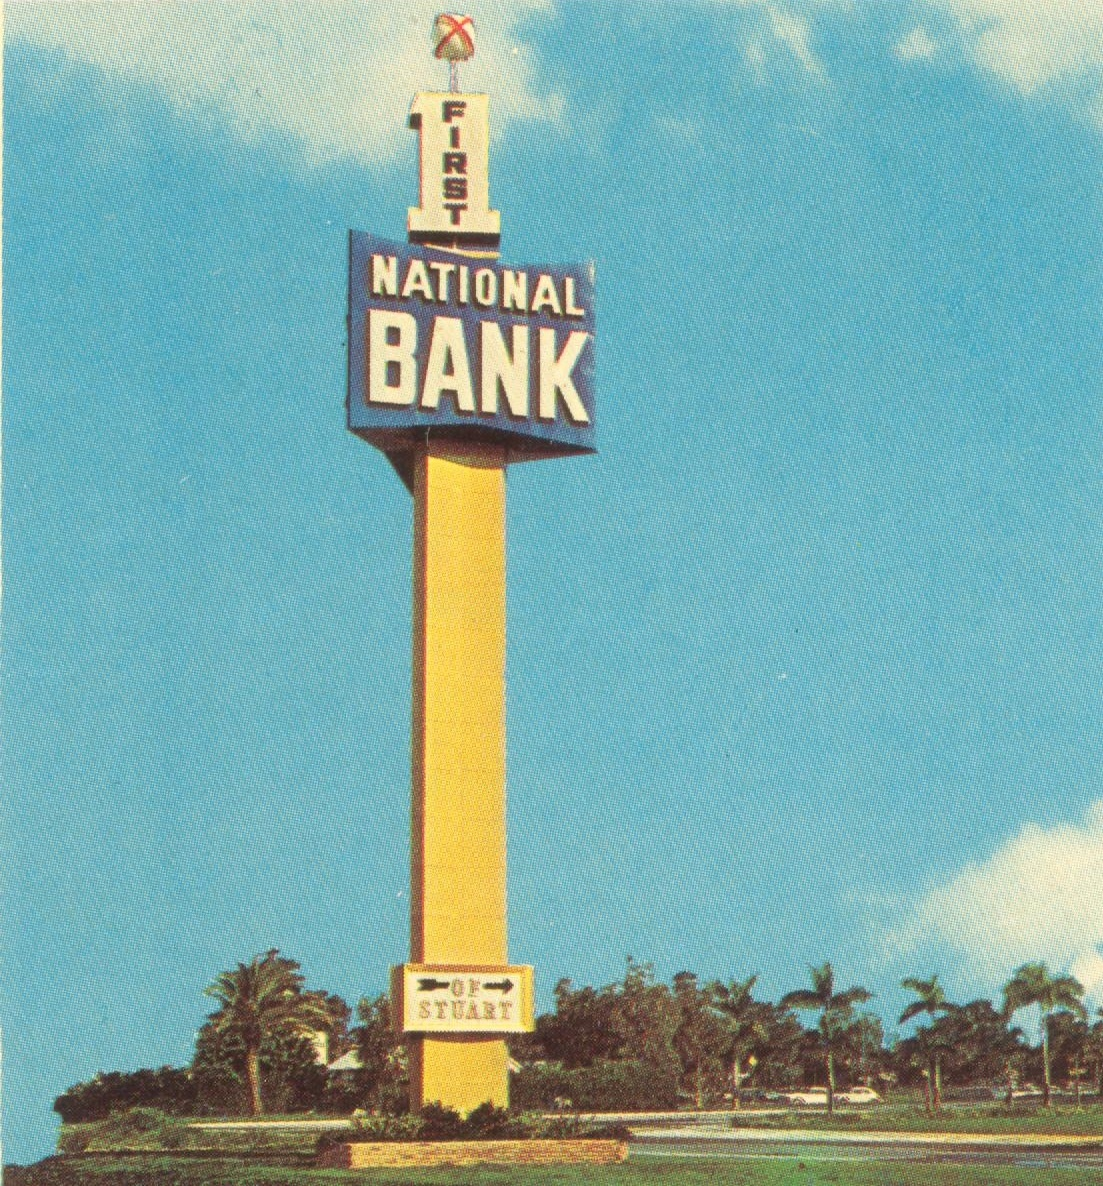 Bank Pylon 1963-64 Luckhardt